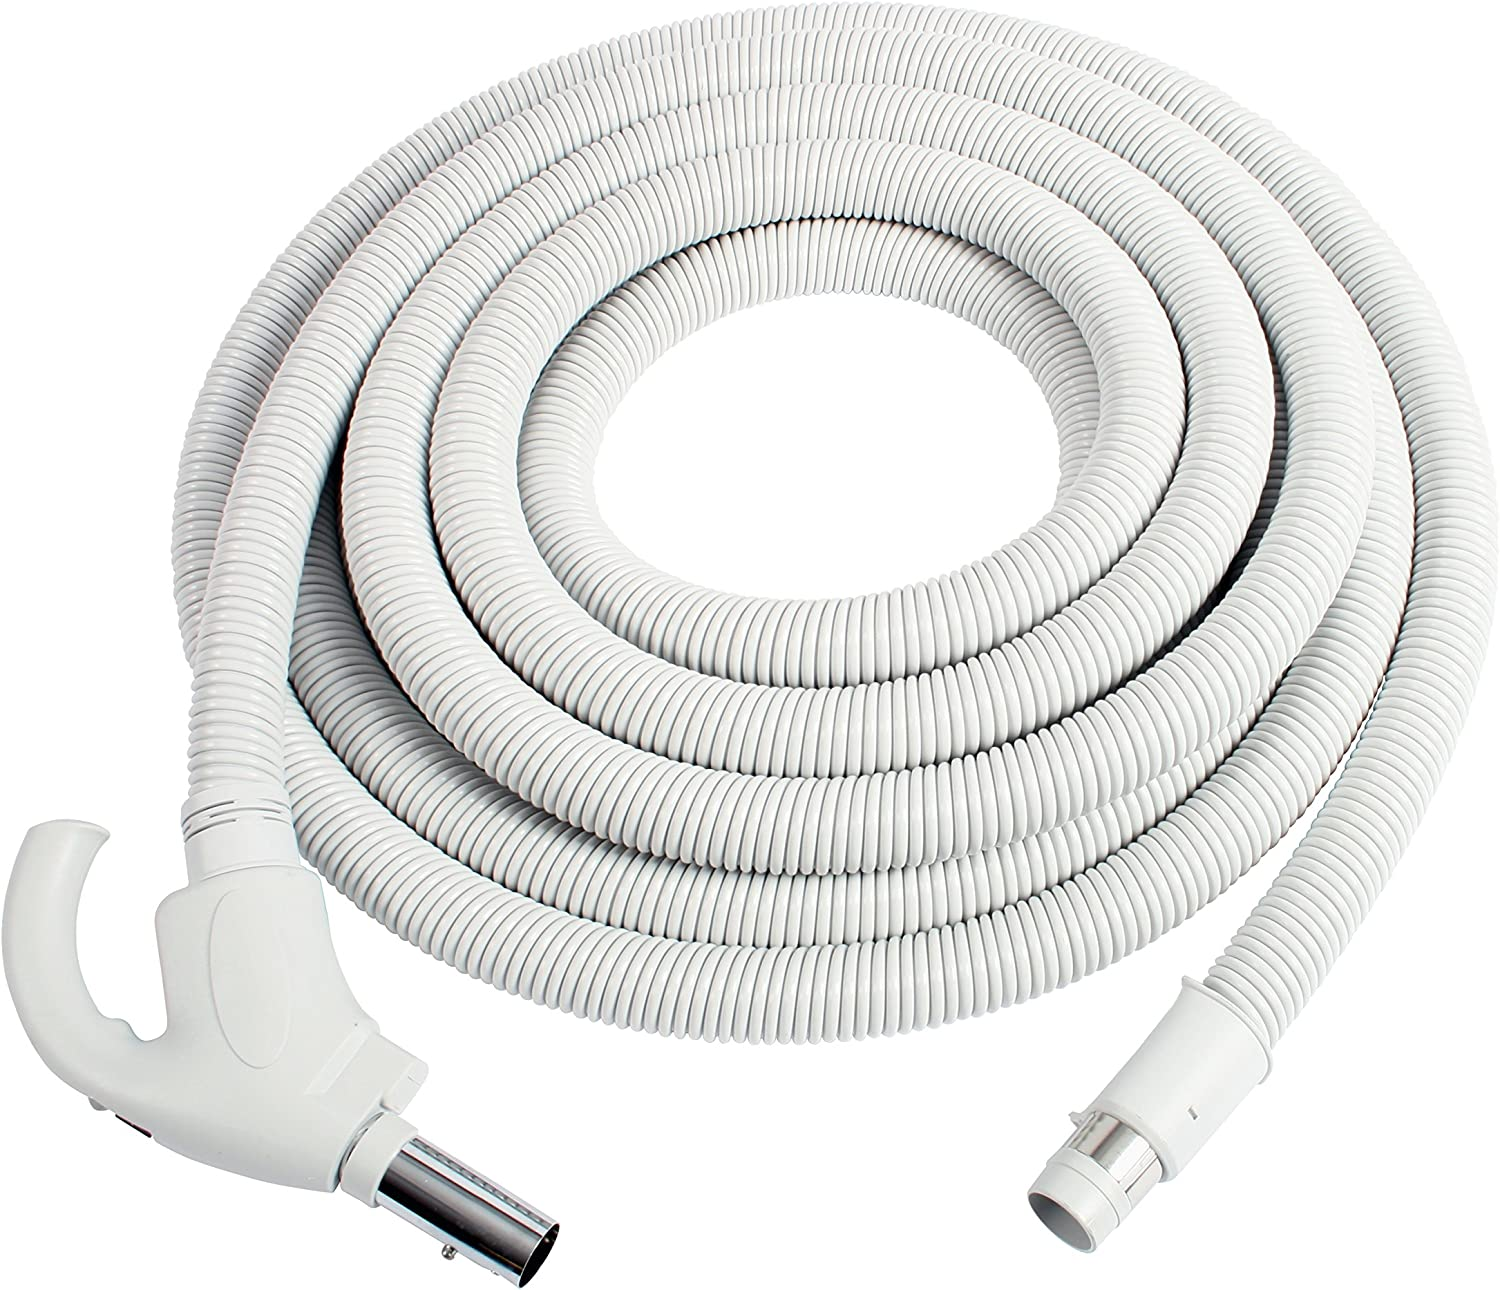 Cen-Tec Systems 91353 Central Vacuum Hose, 40 Ft, Light Gray